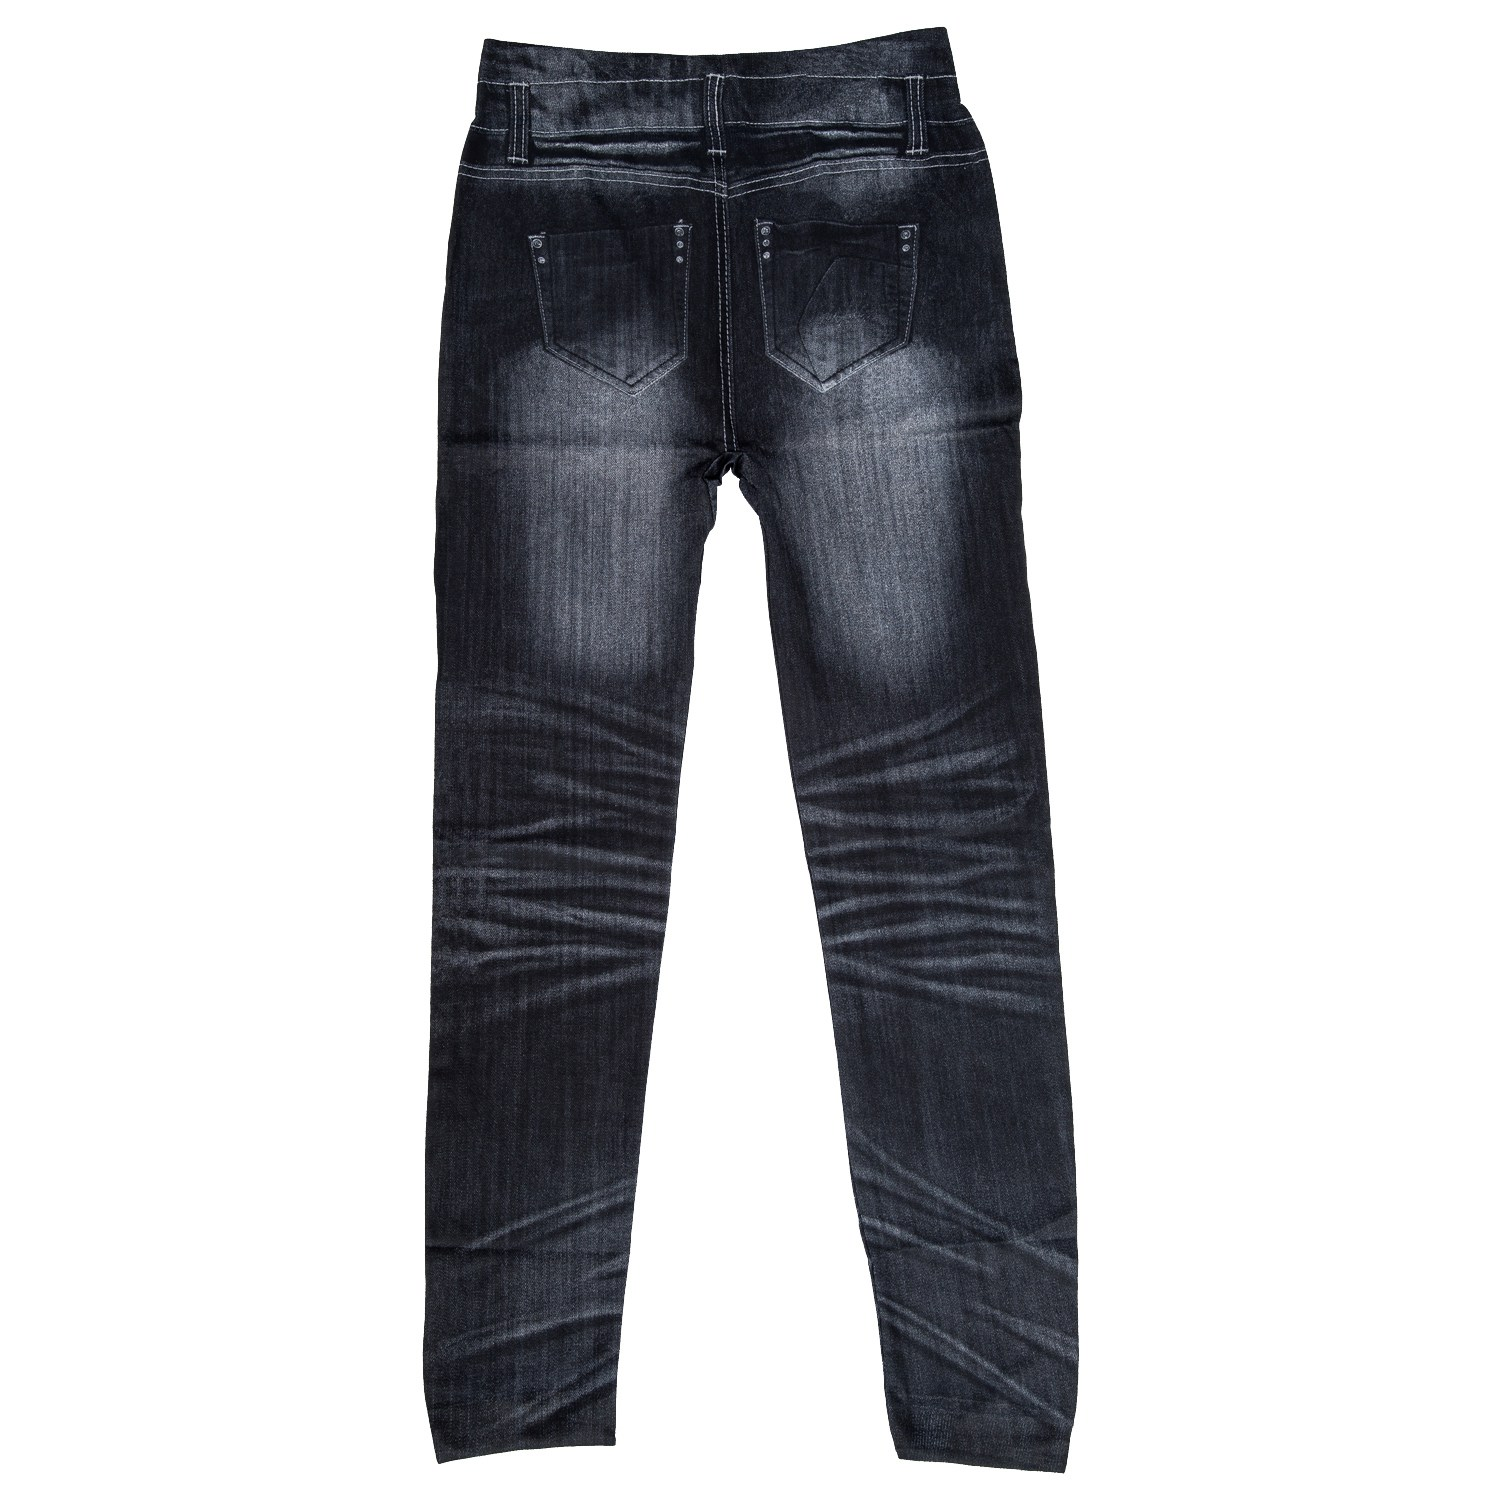 A modern slim with room to move, the ™ slim fit stretch jeans are a classic since right now. These jeans sit below the waist with a slim fit from hip to ankle. Th /5(K).